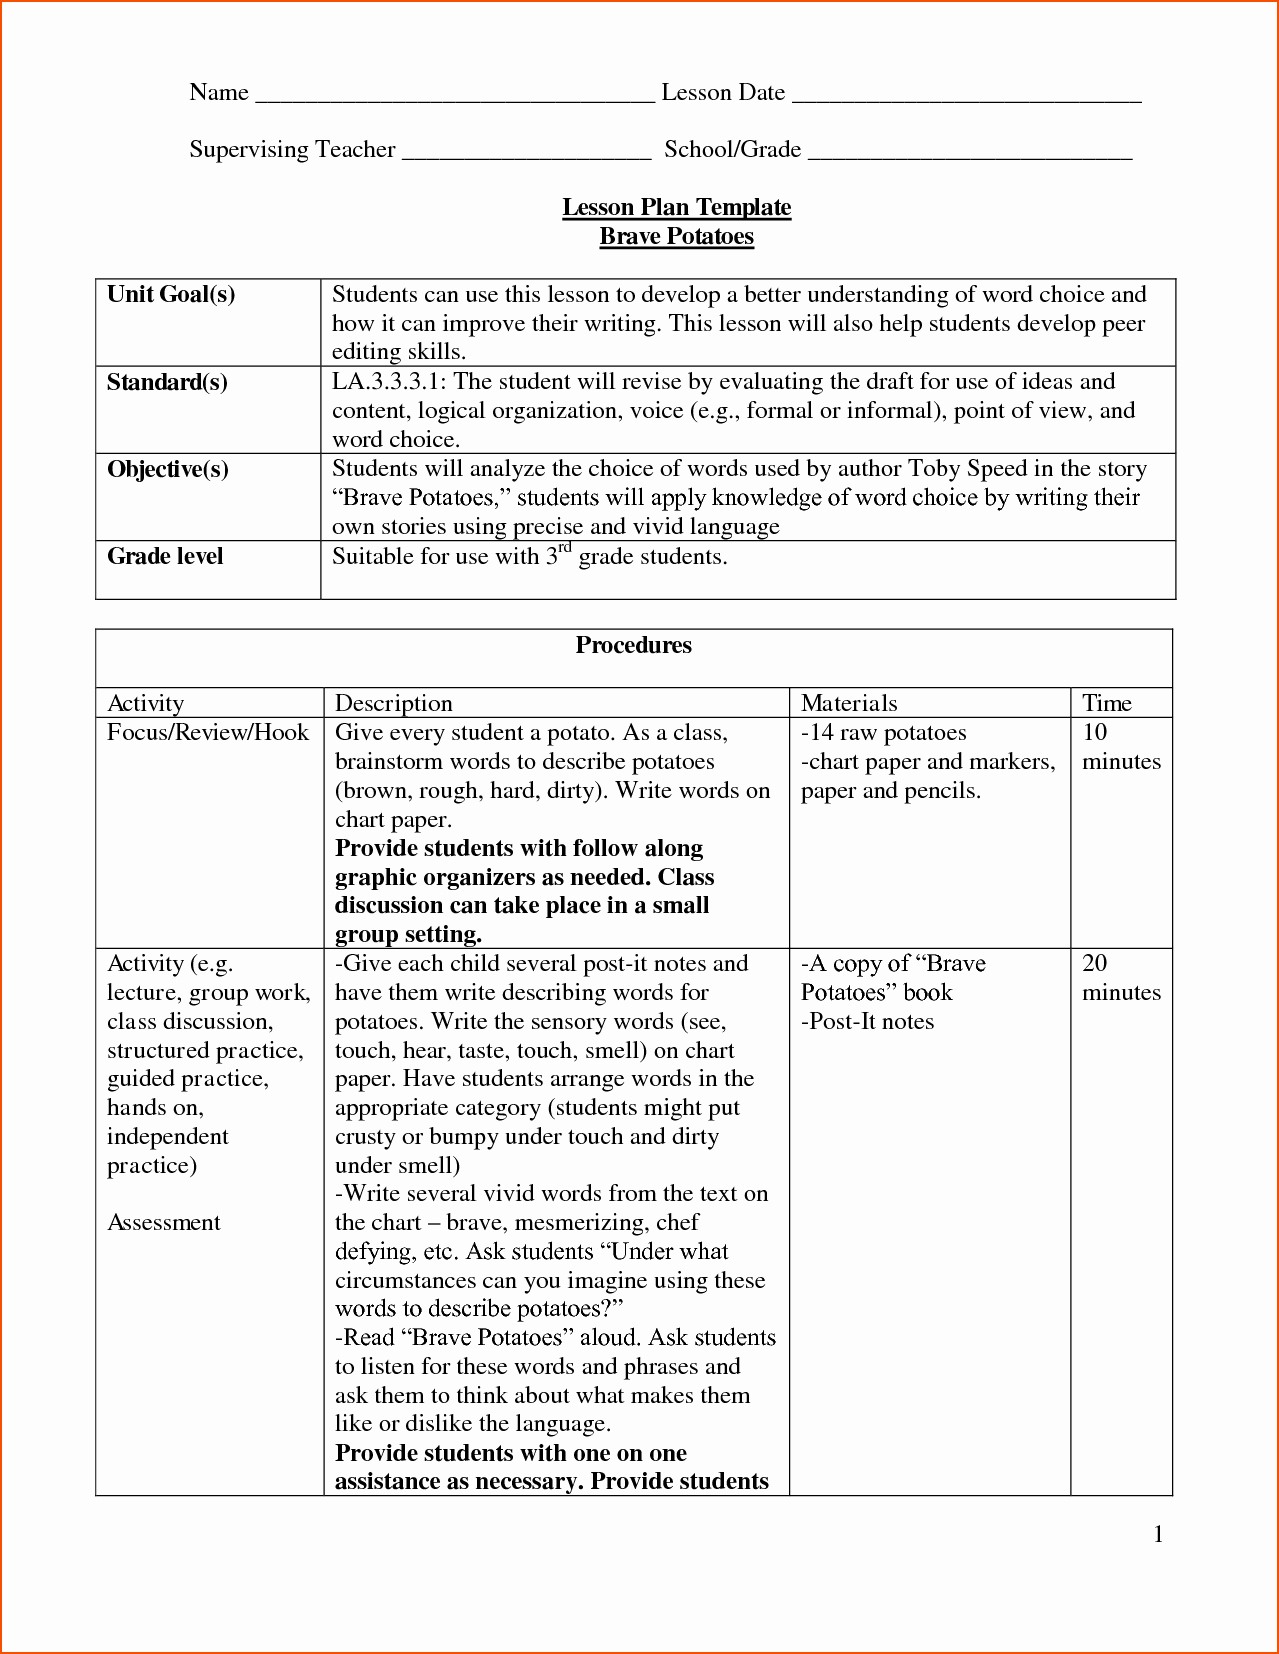 Daily Lesson Plan Template Doc Inspirational 8 Lesson Plan Template Doc Bookletemplate